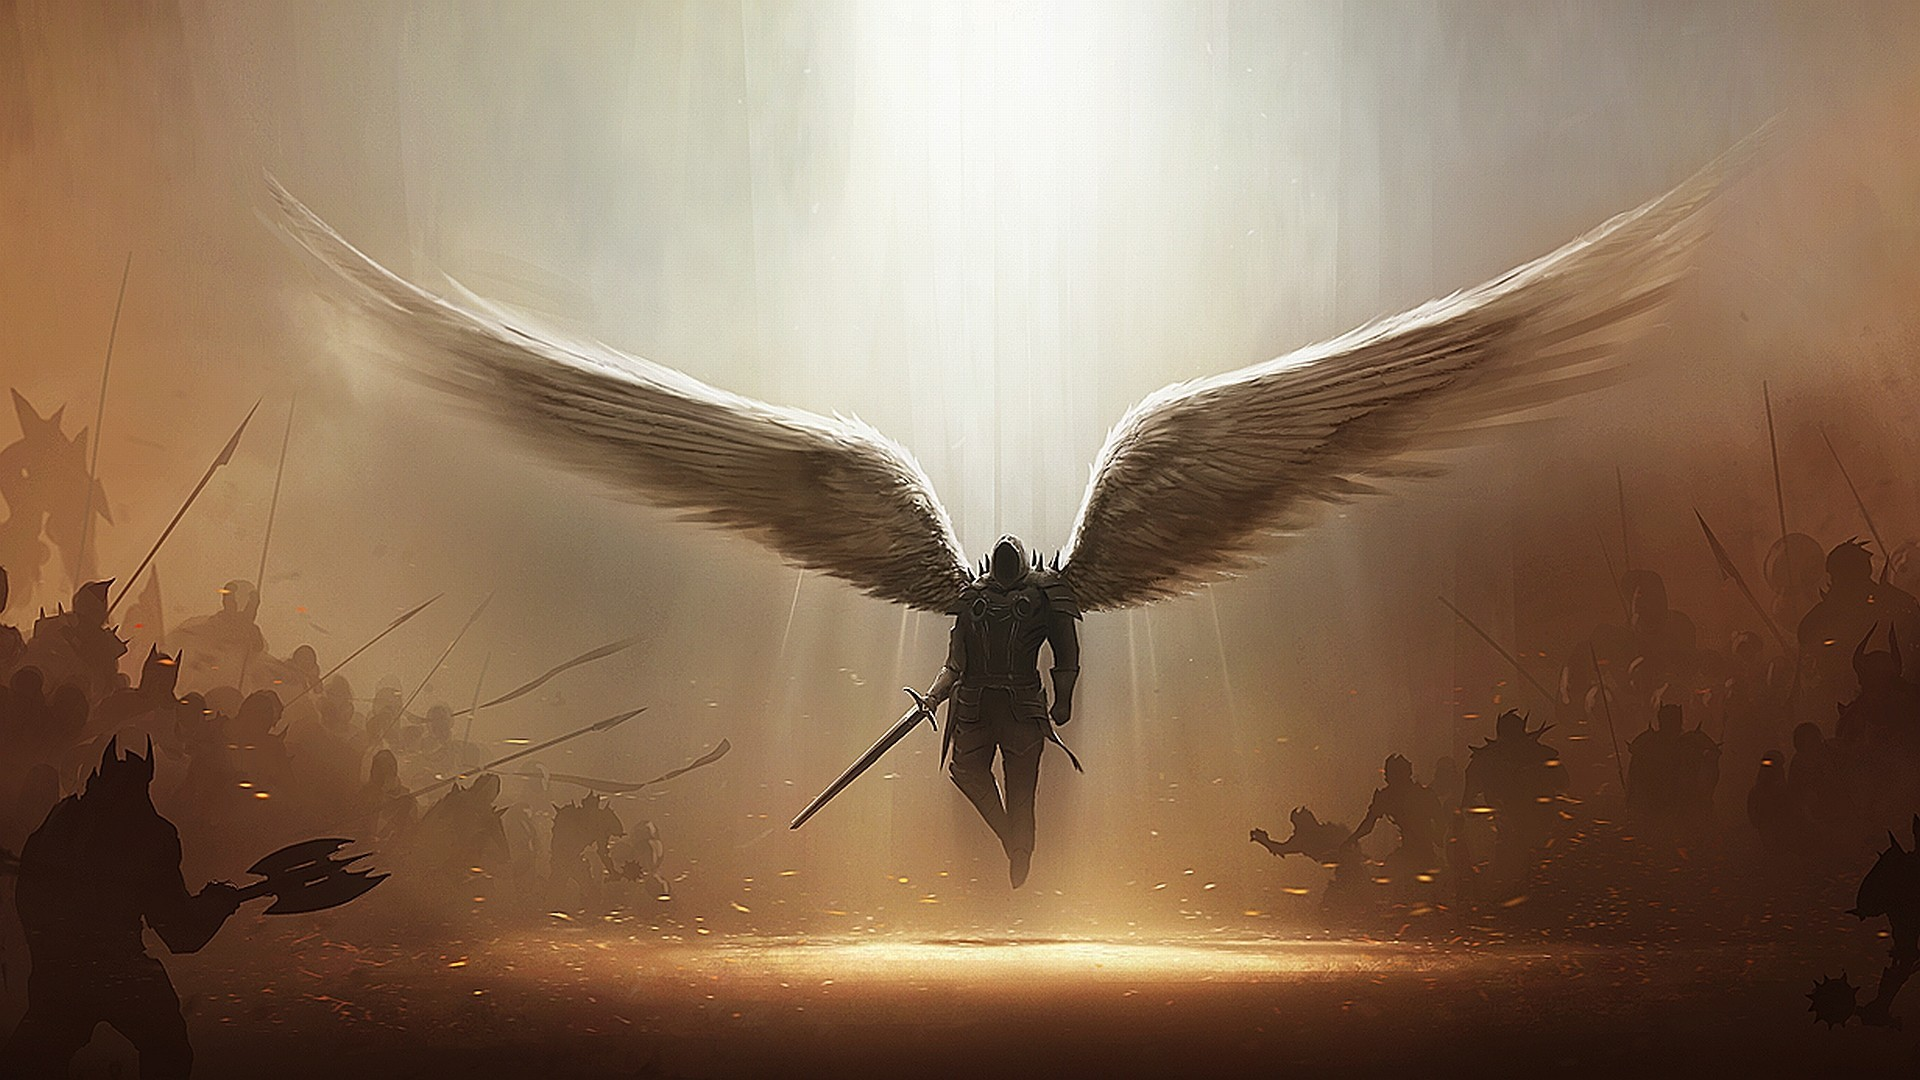 Winged-Warrior-Wallpaper.jpg